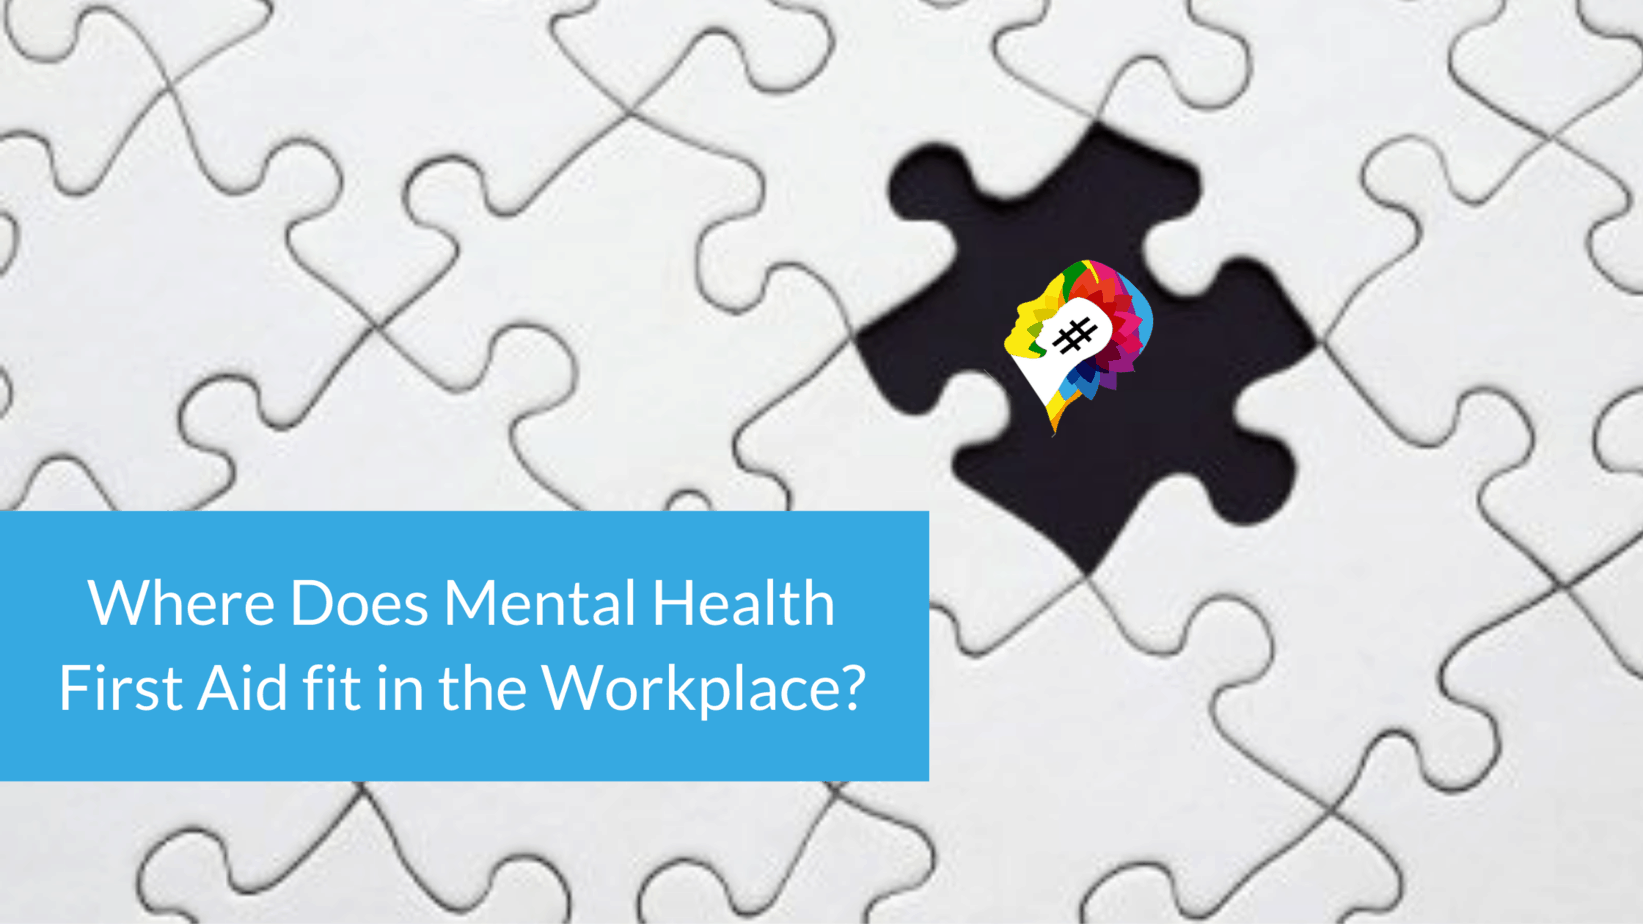 Where does Mental Health First Aid Fit in the Workplace